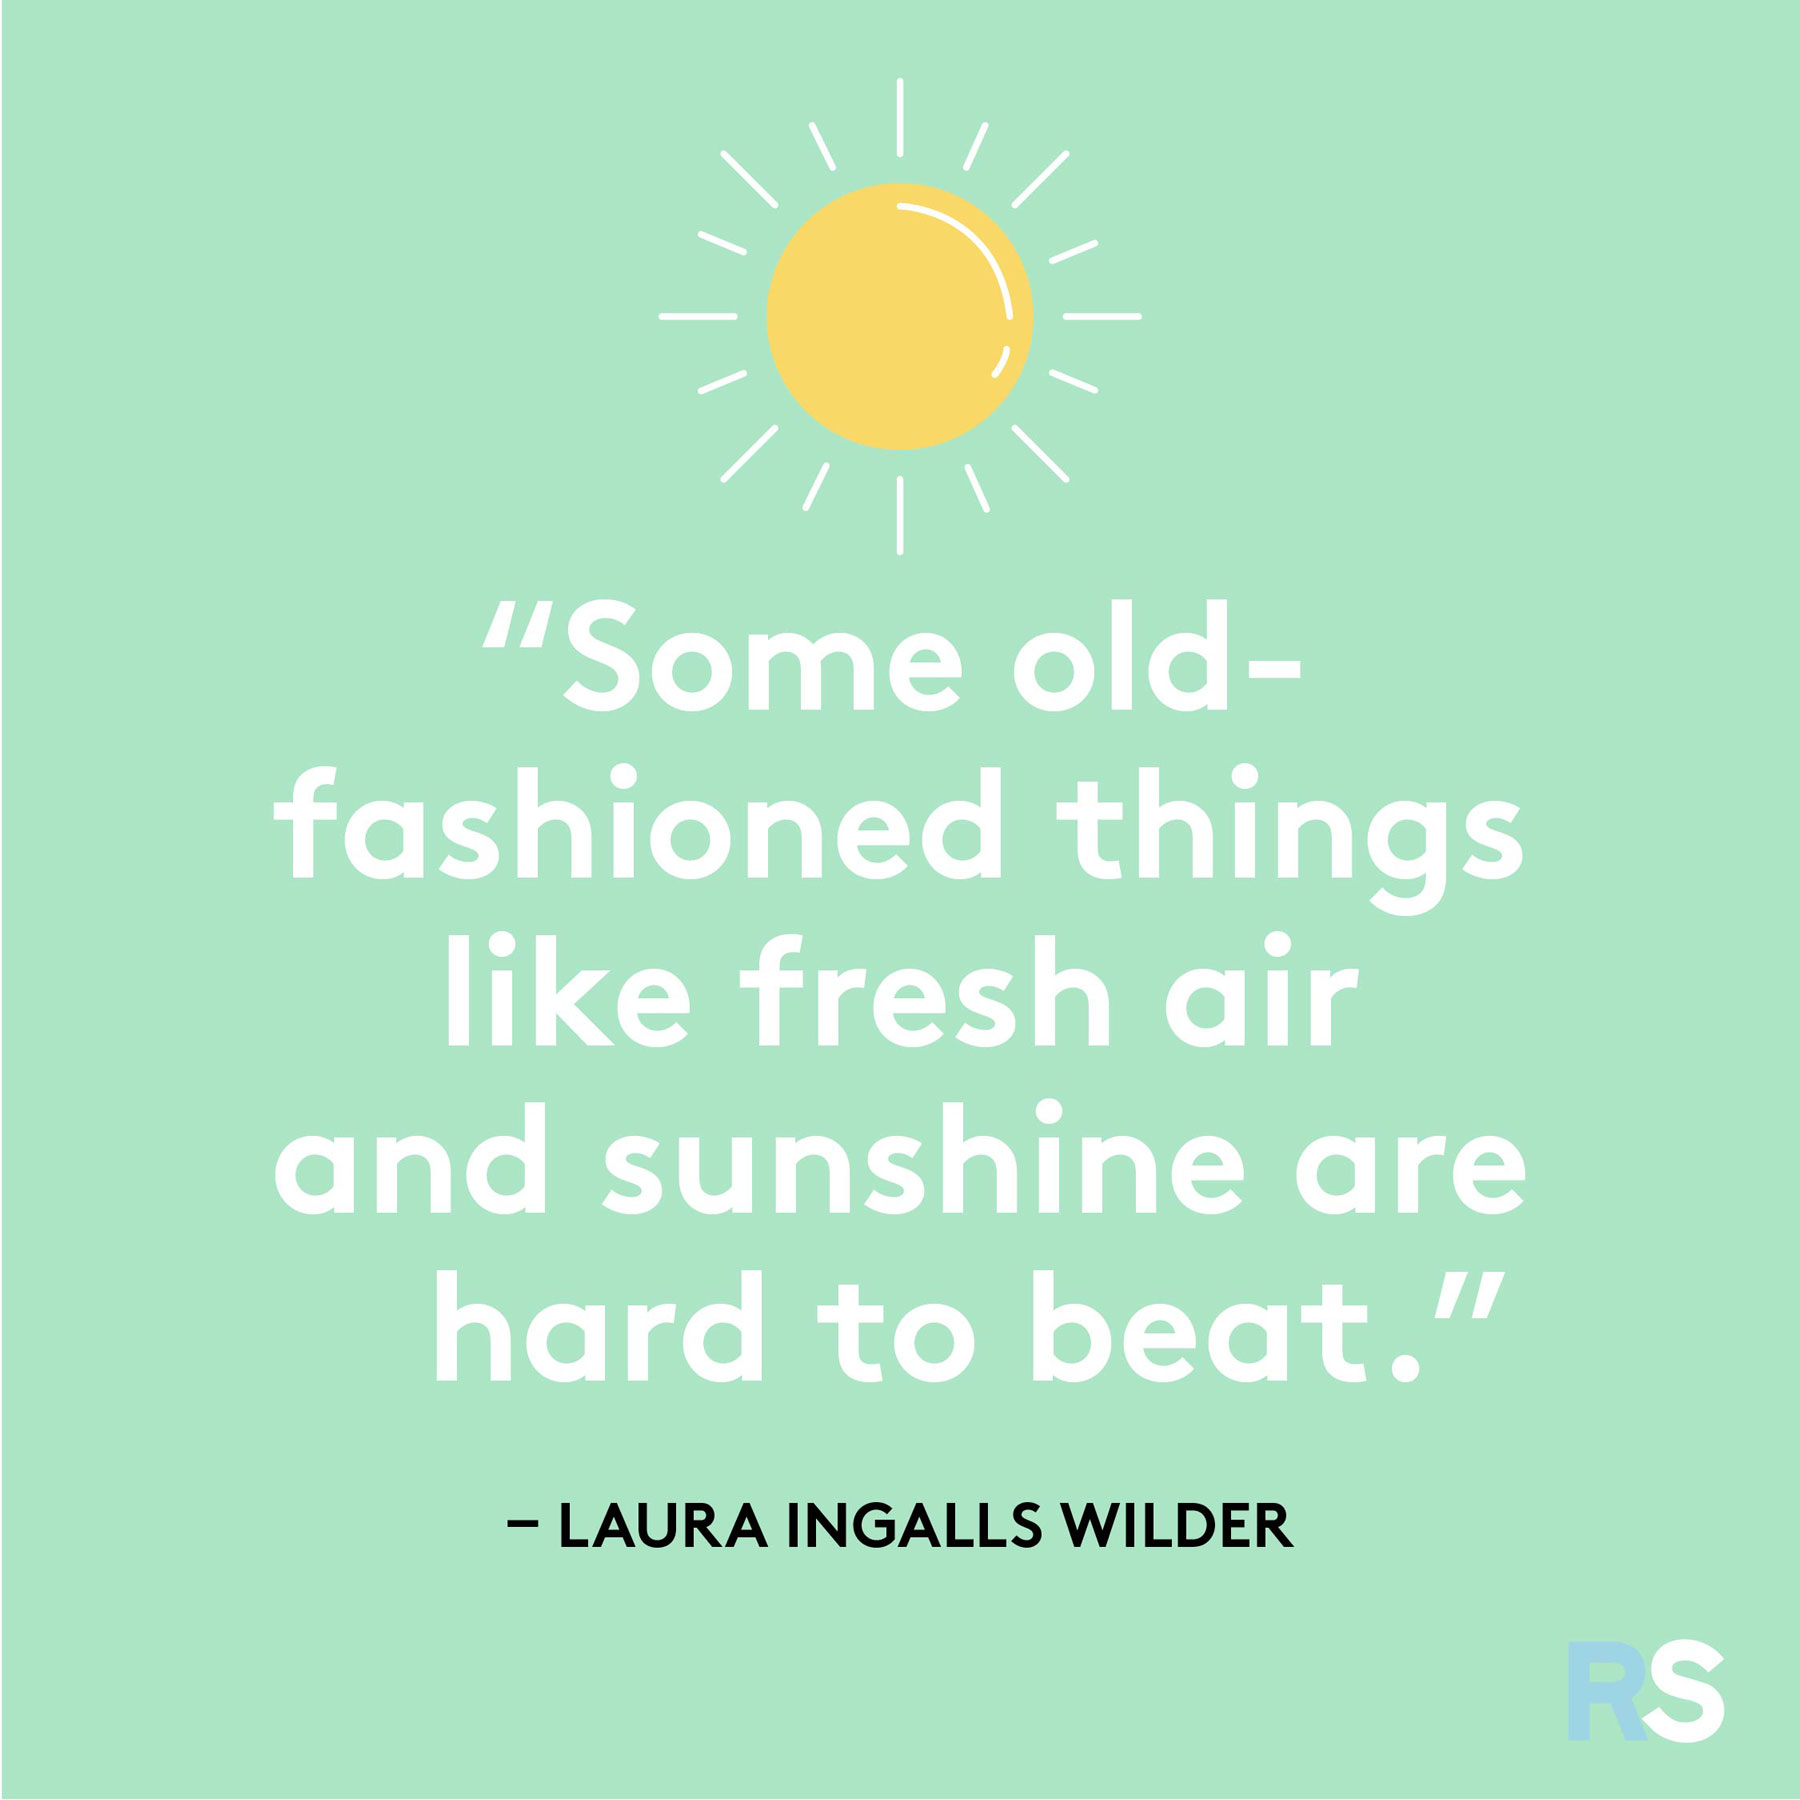 Easter quotes, captions, and messages - Laura Ingalls Wilder quote